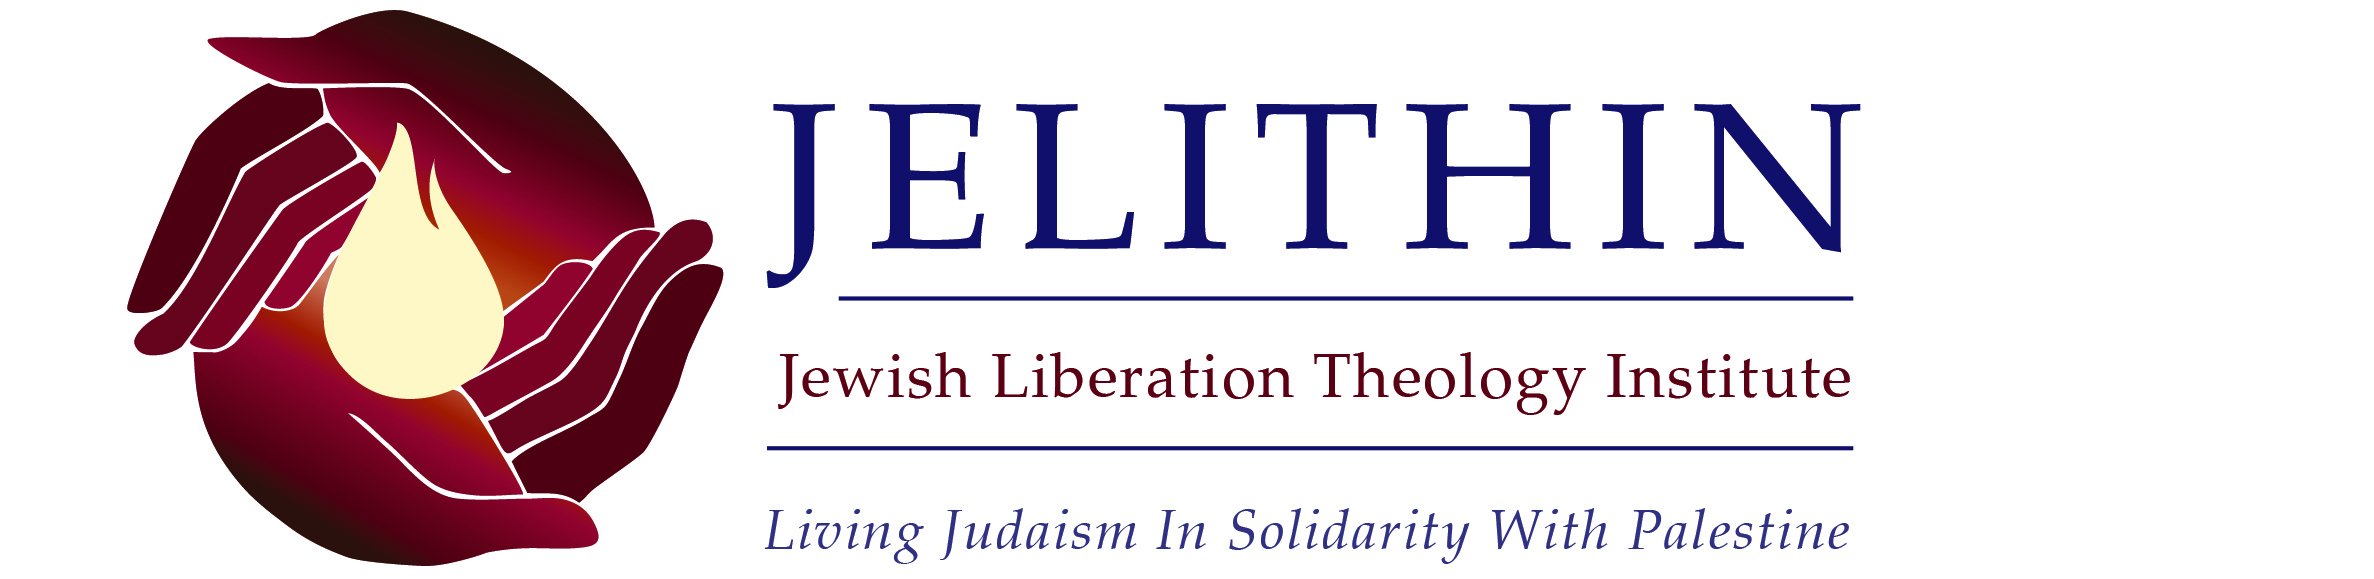 Logo  Hands around flame. JELITHIN Jewish Liberation Theology Institute: Living Judaism In Solidary With Palestine